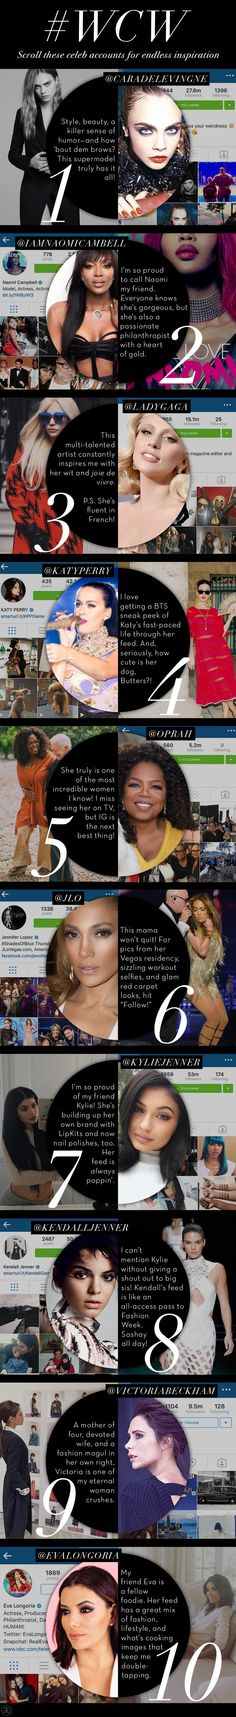 Beyond the Brow | Official Blog of Anastasia Beverly Hills - #WCW: Top Ten Celeb IG Accounts